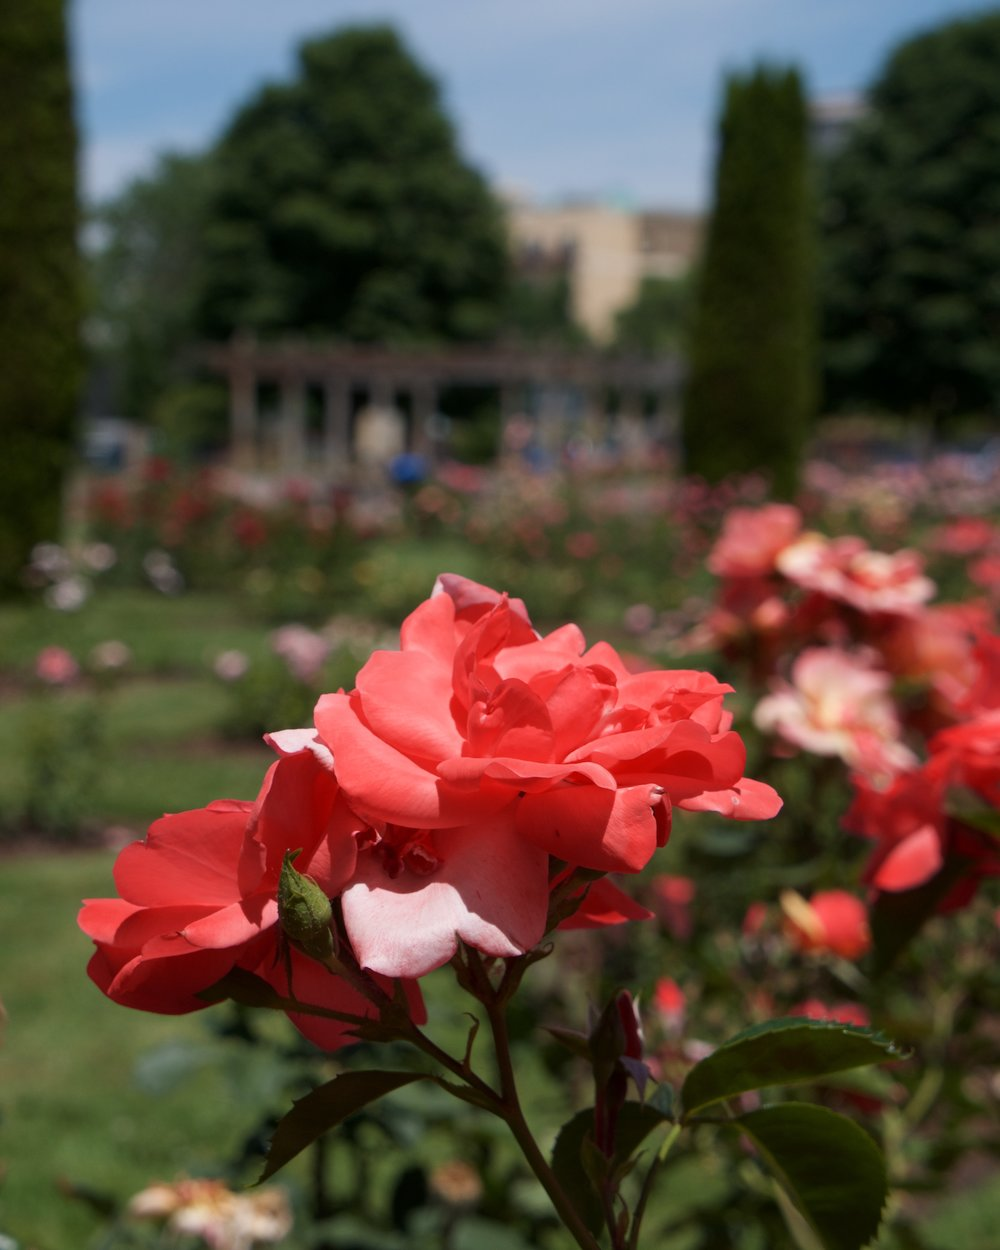 Rose garden in Julia Davis Park